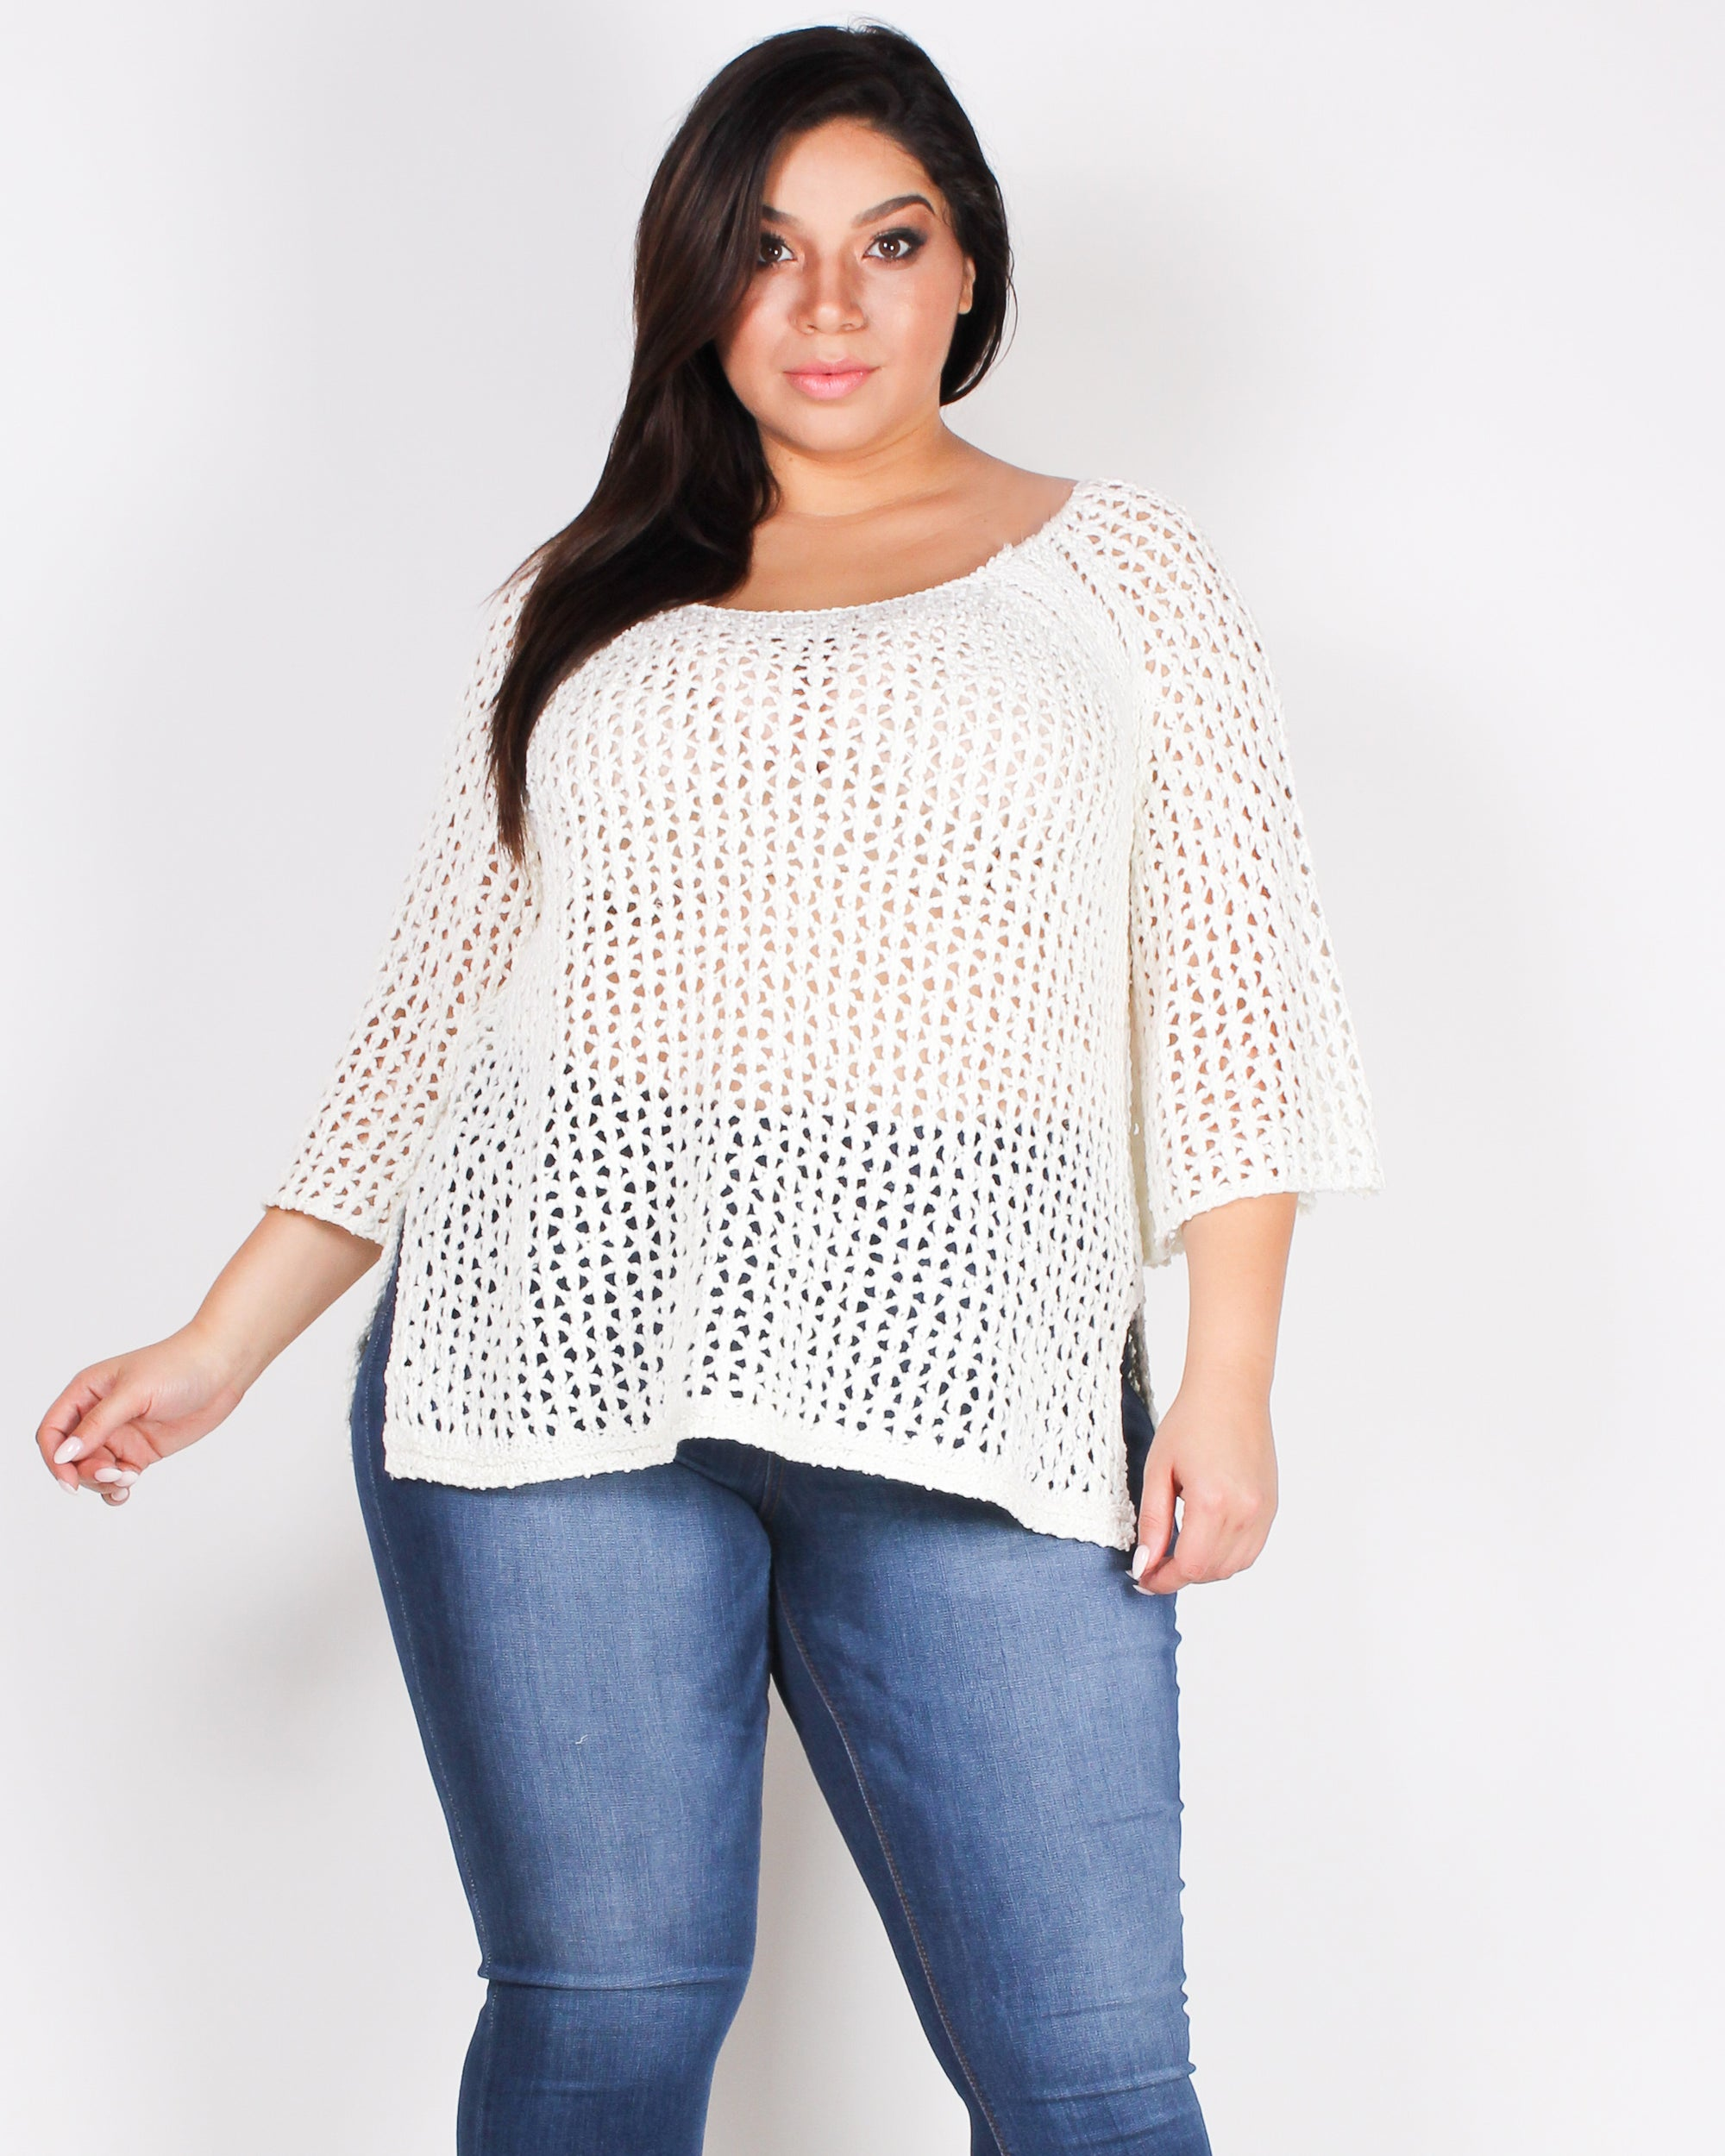 Fashion Q Shop Q Let's Get Back to the Knitty Gritty Plus Sweater (Soft White) CL1704P-SWT